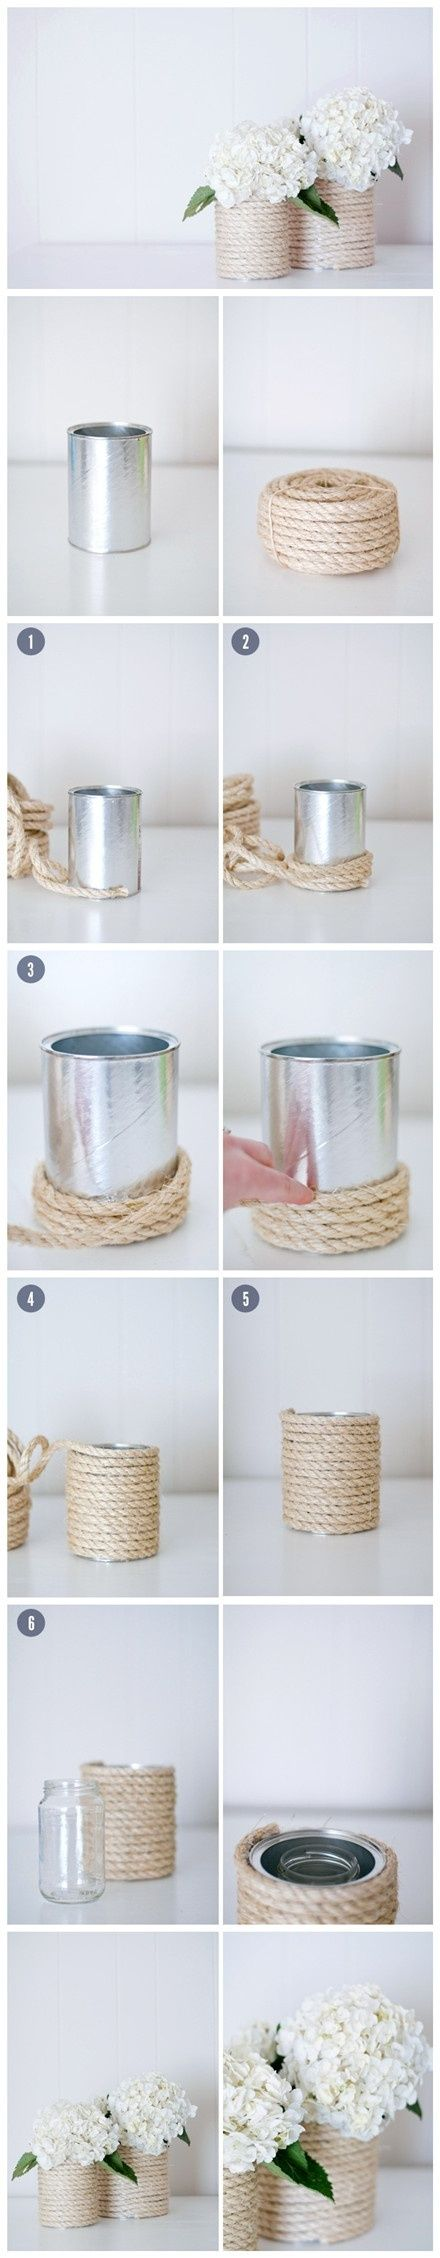 Tin Can Rope DIY Vases #craft #vase #flowers